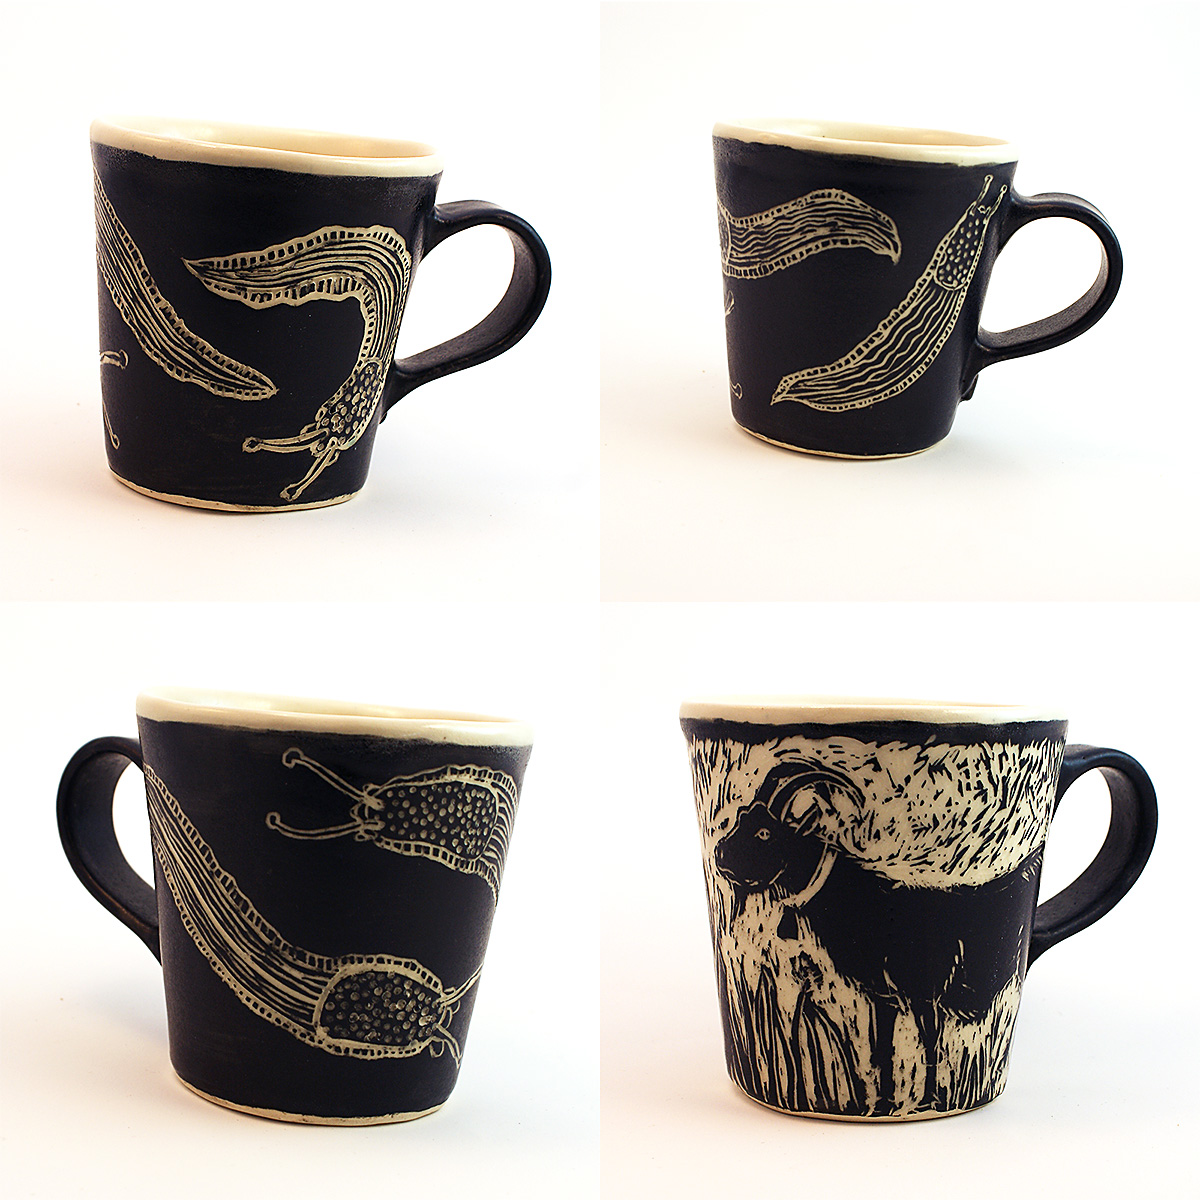 Four Slug and Goat Mugs